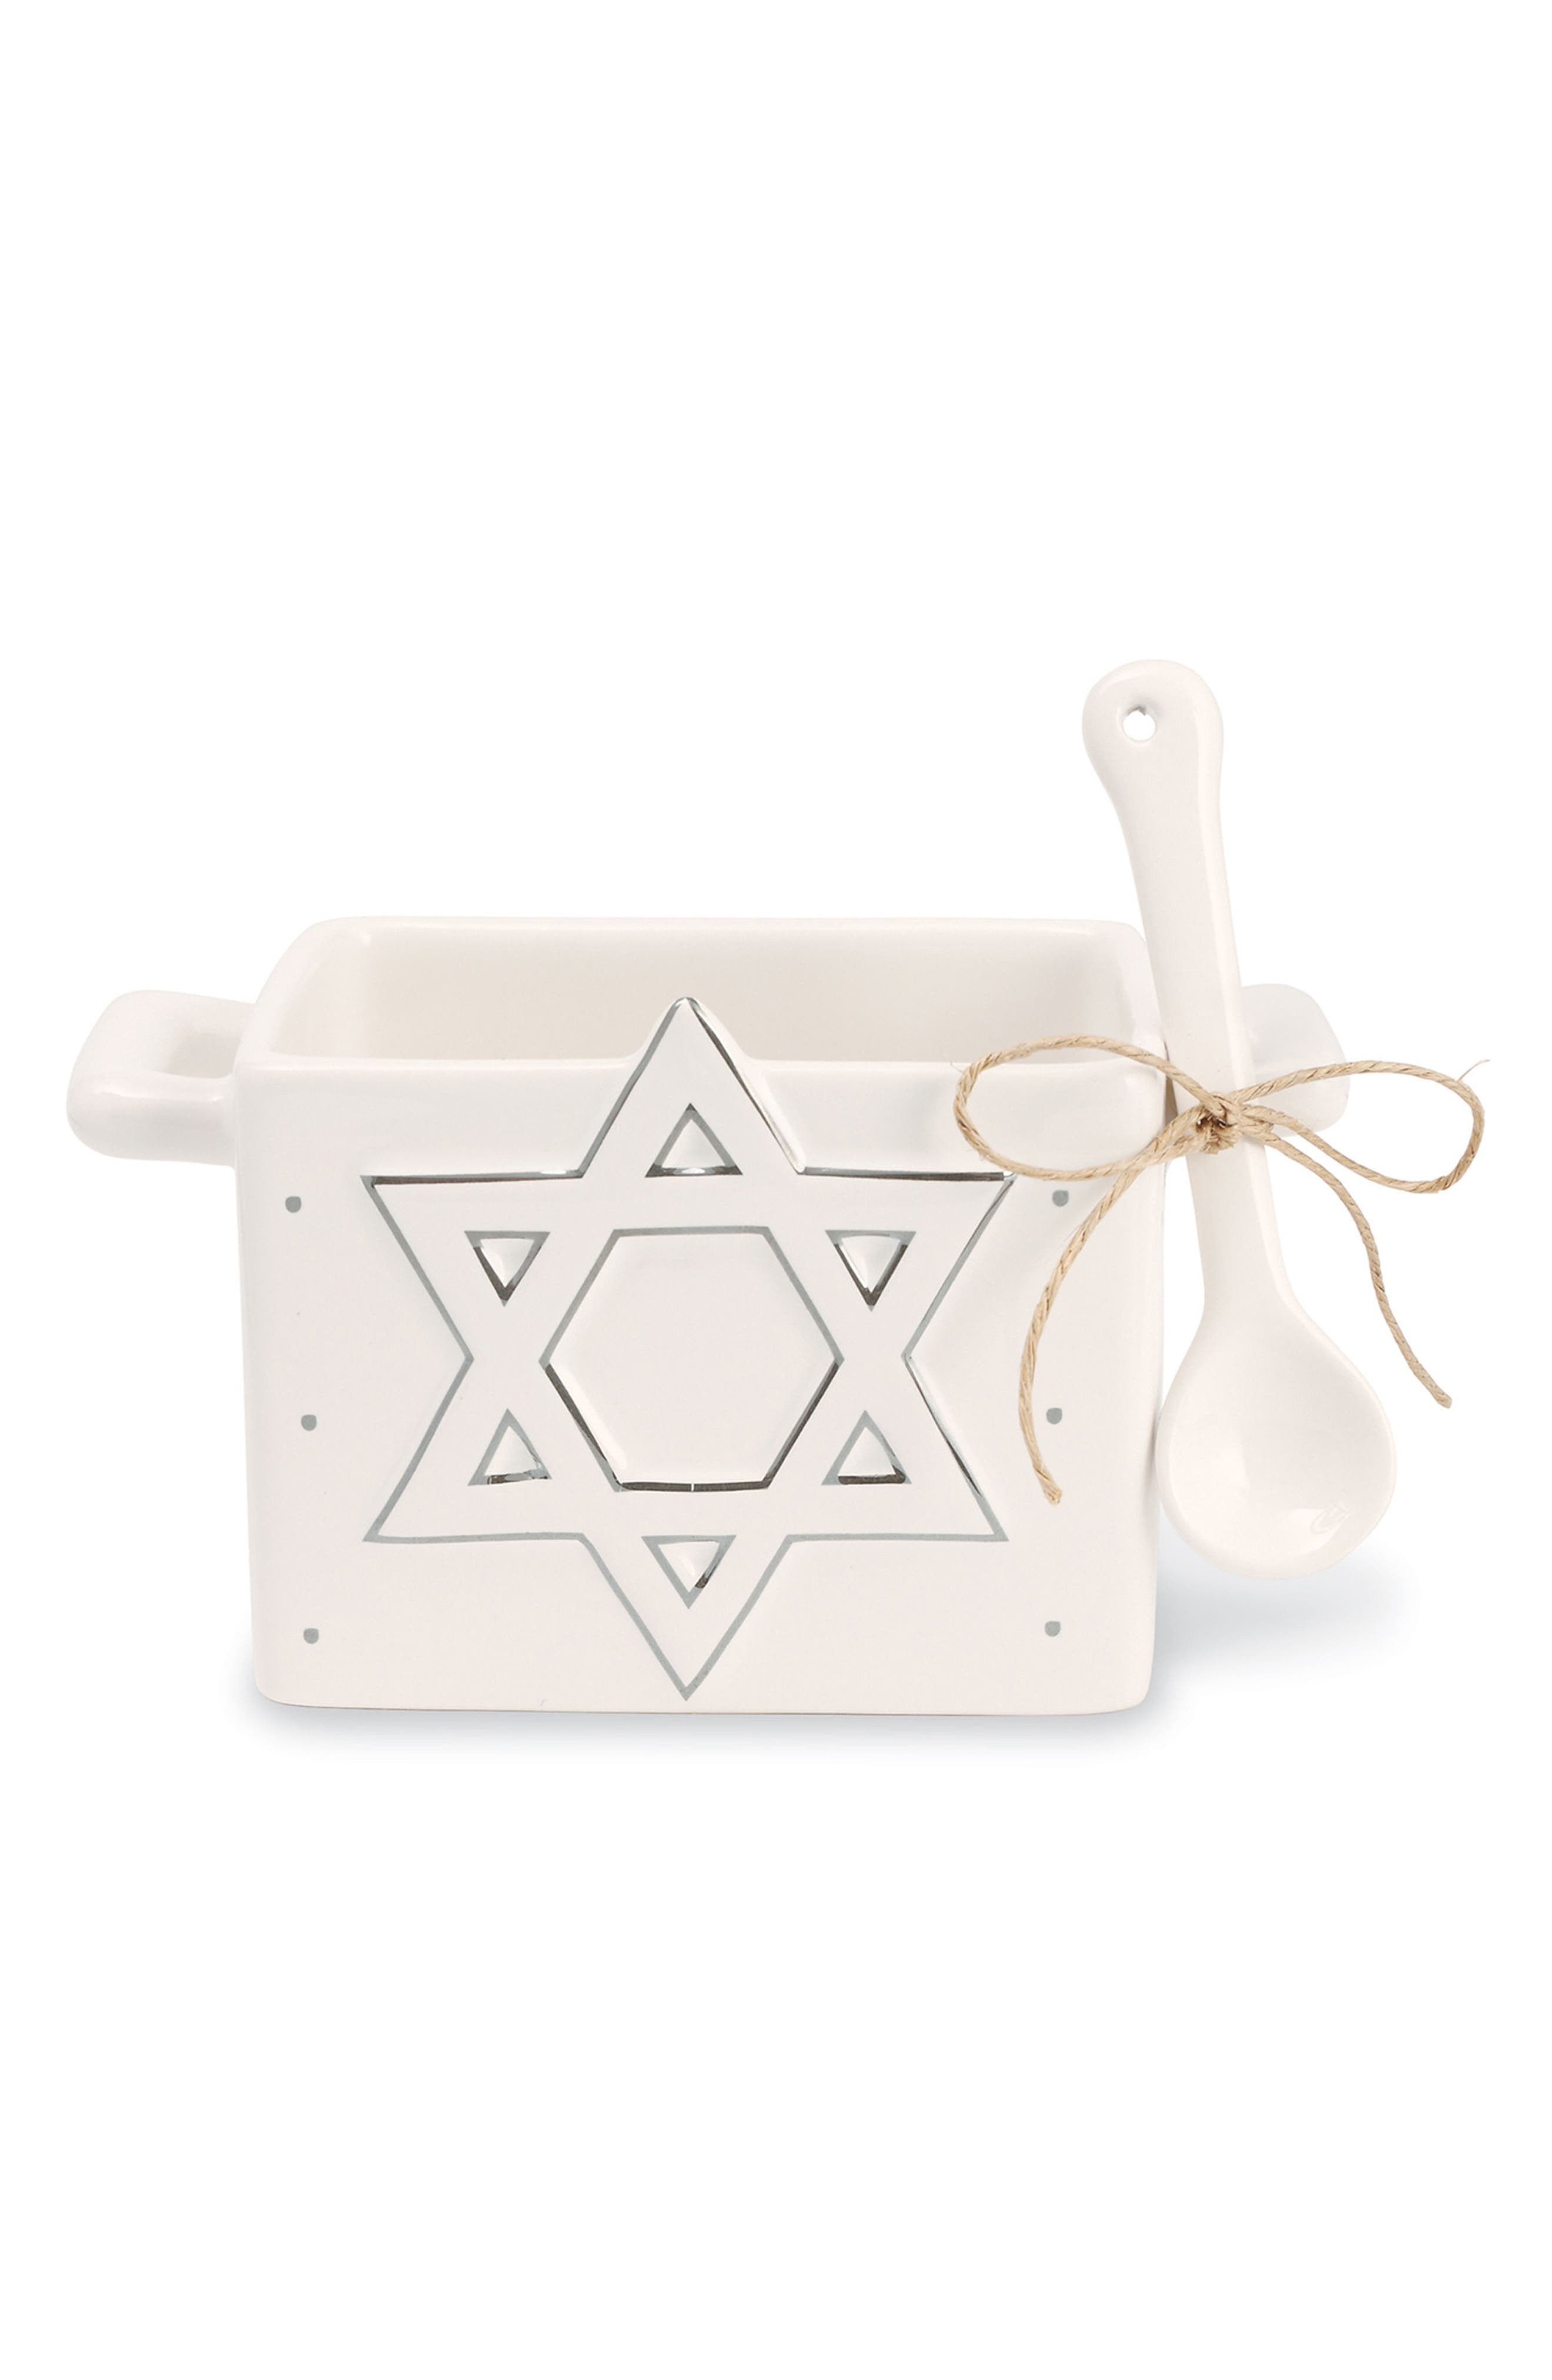 Star of David Hanukkah Candy Caddy & Spoon,                         Main,                         color, White